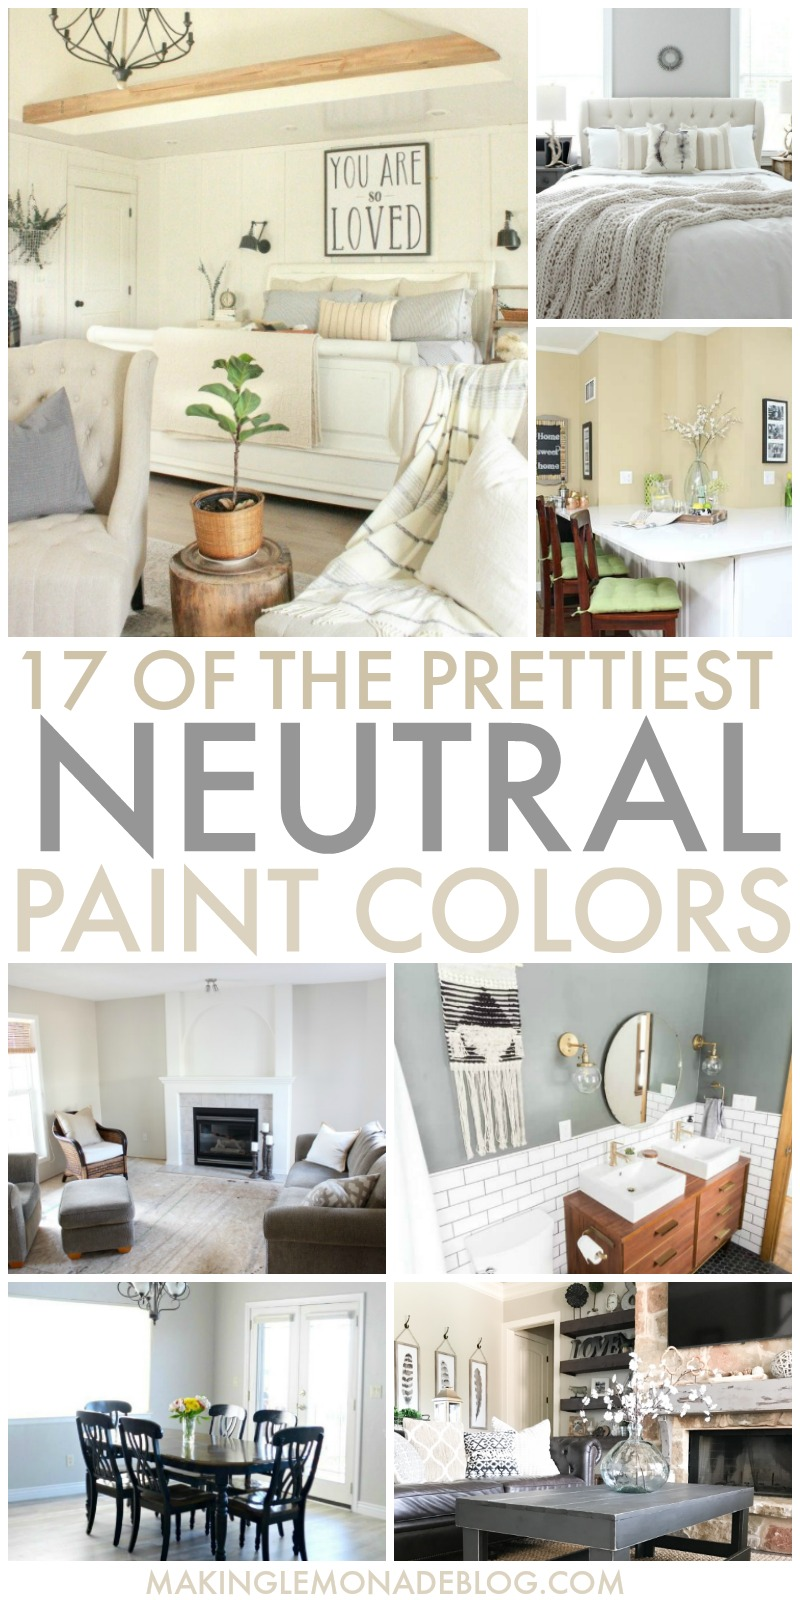 17 of the Prettiest Neutral Paint Colors | Making Lemonade